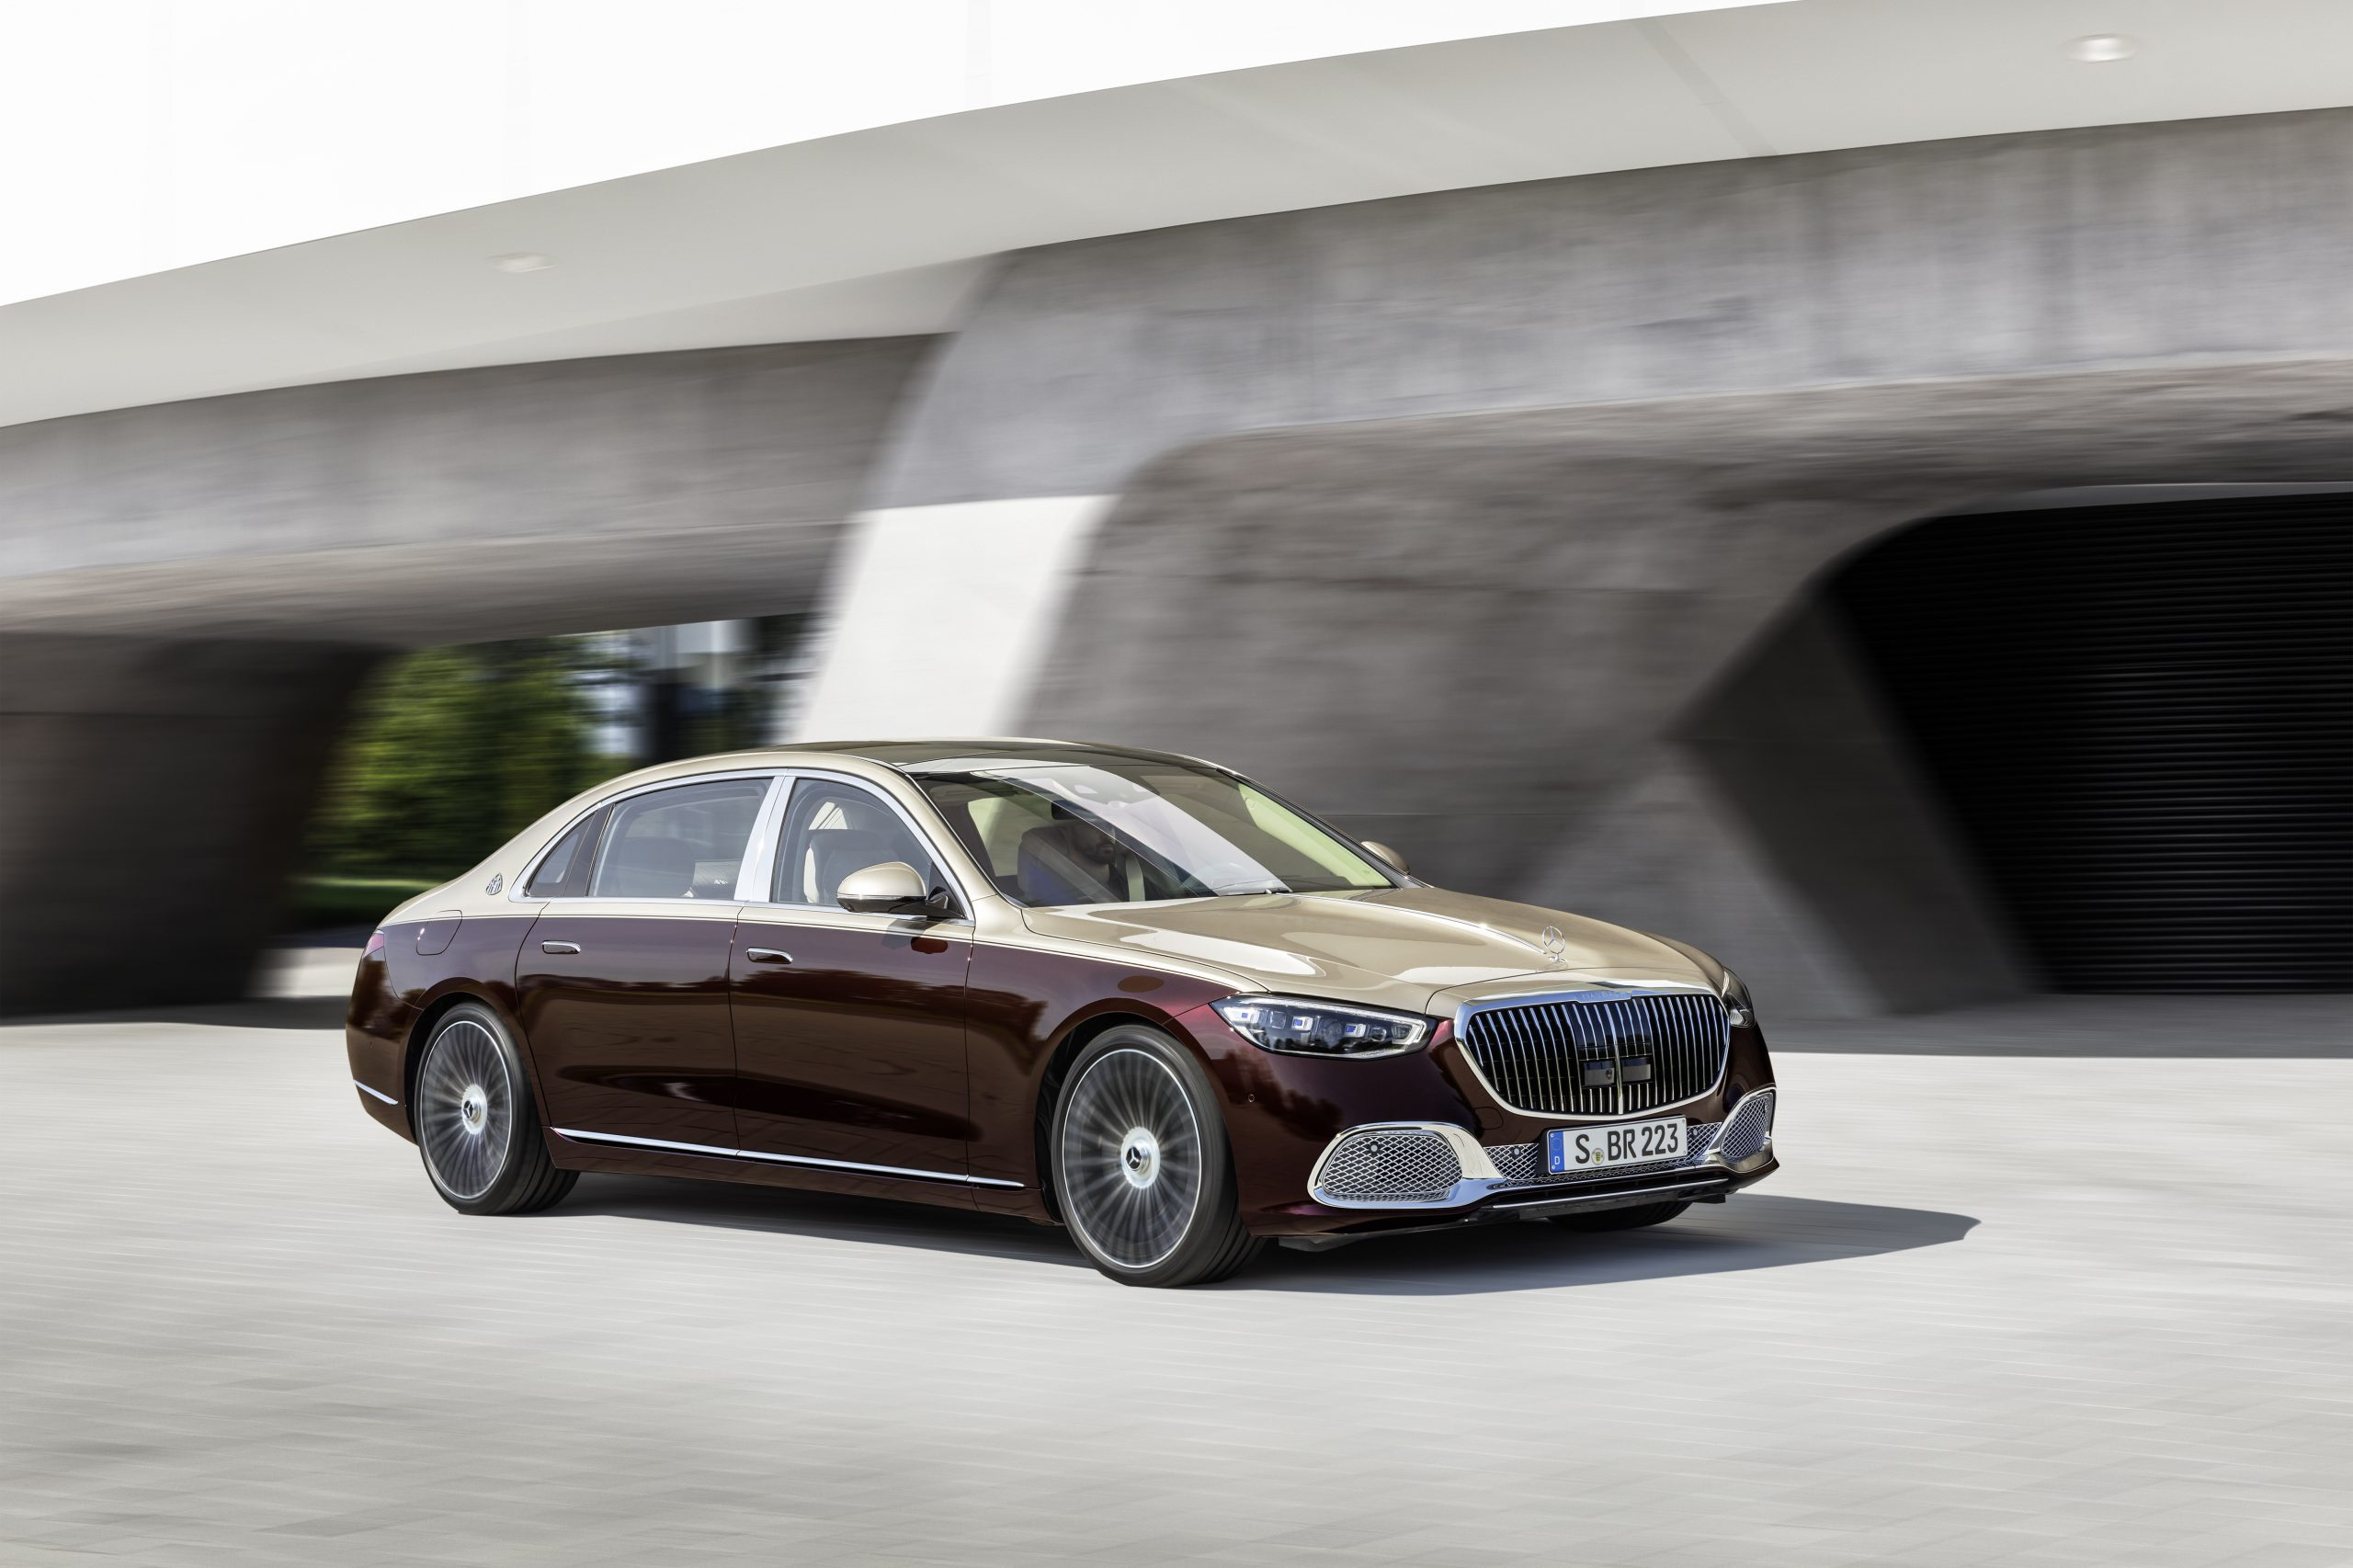 The new Mercedes-Maybach S-Class